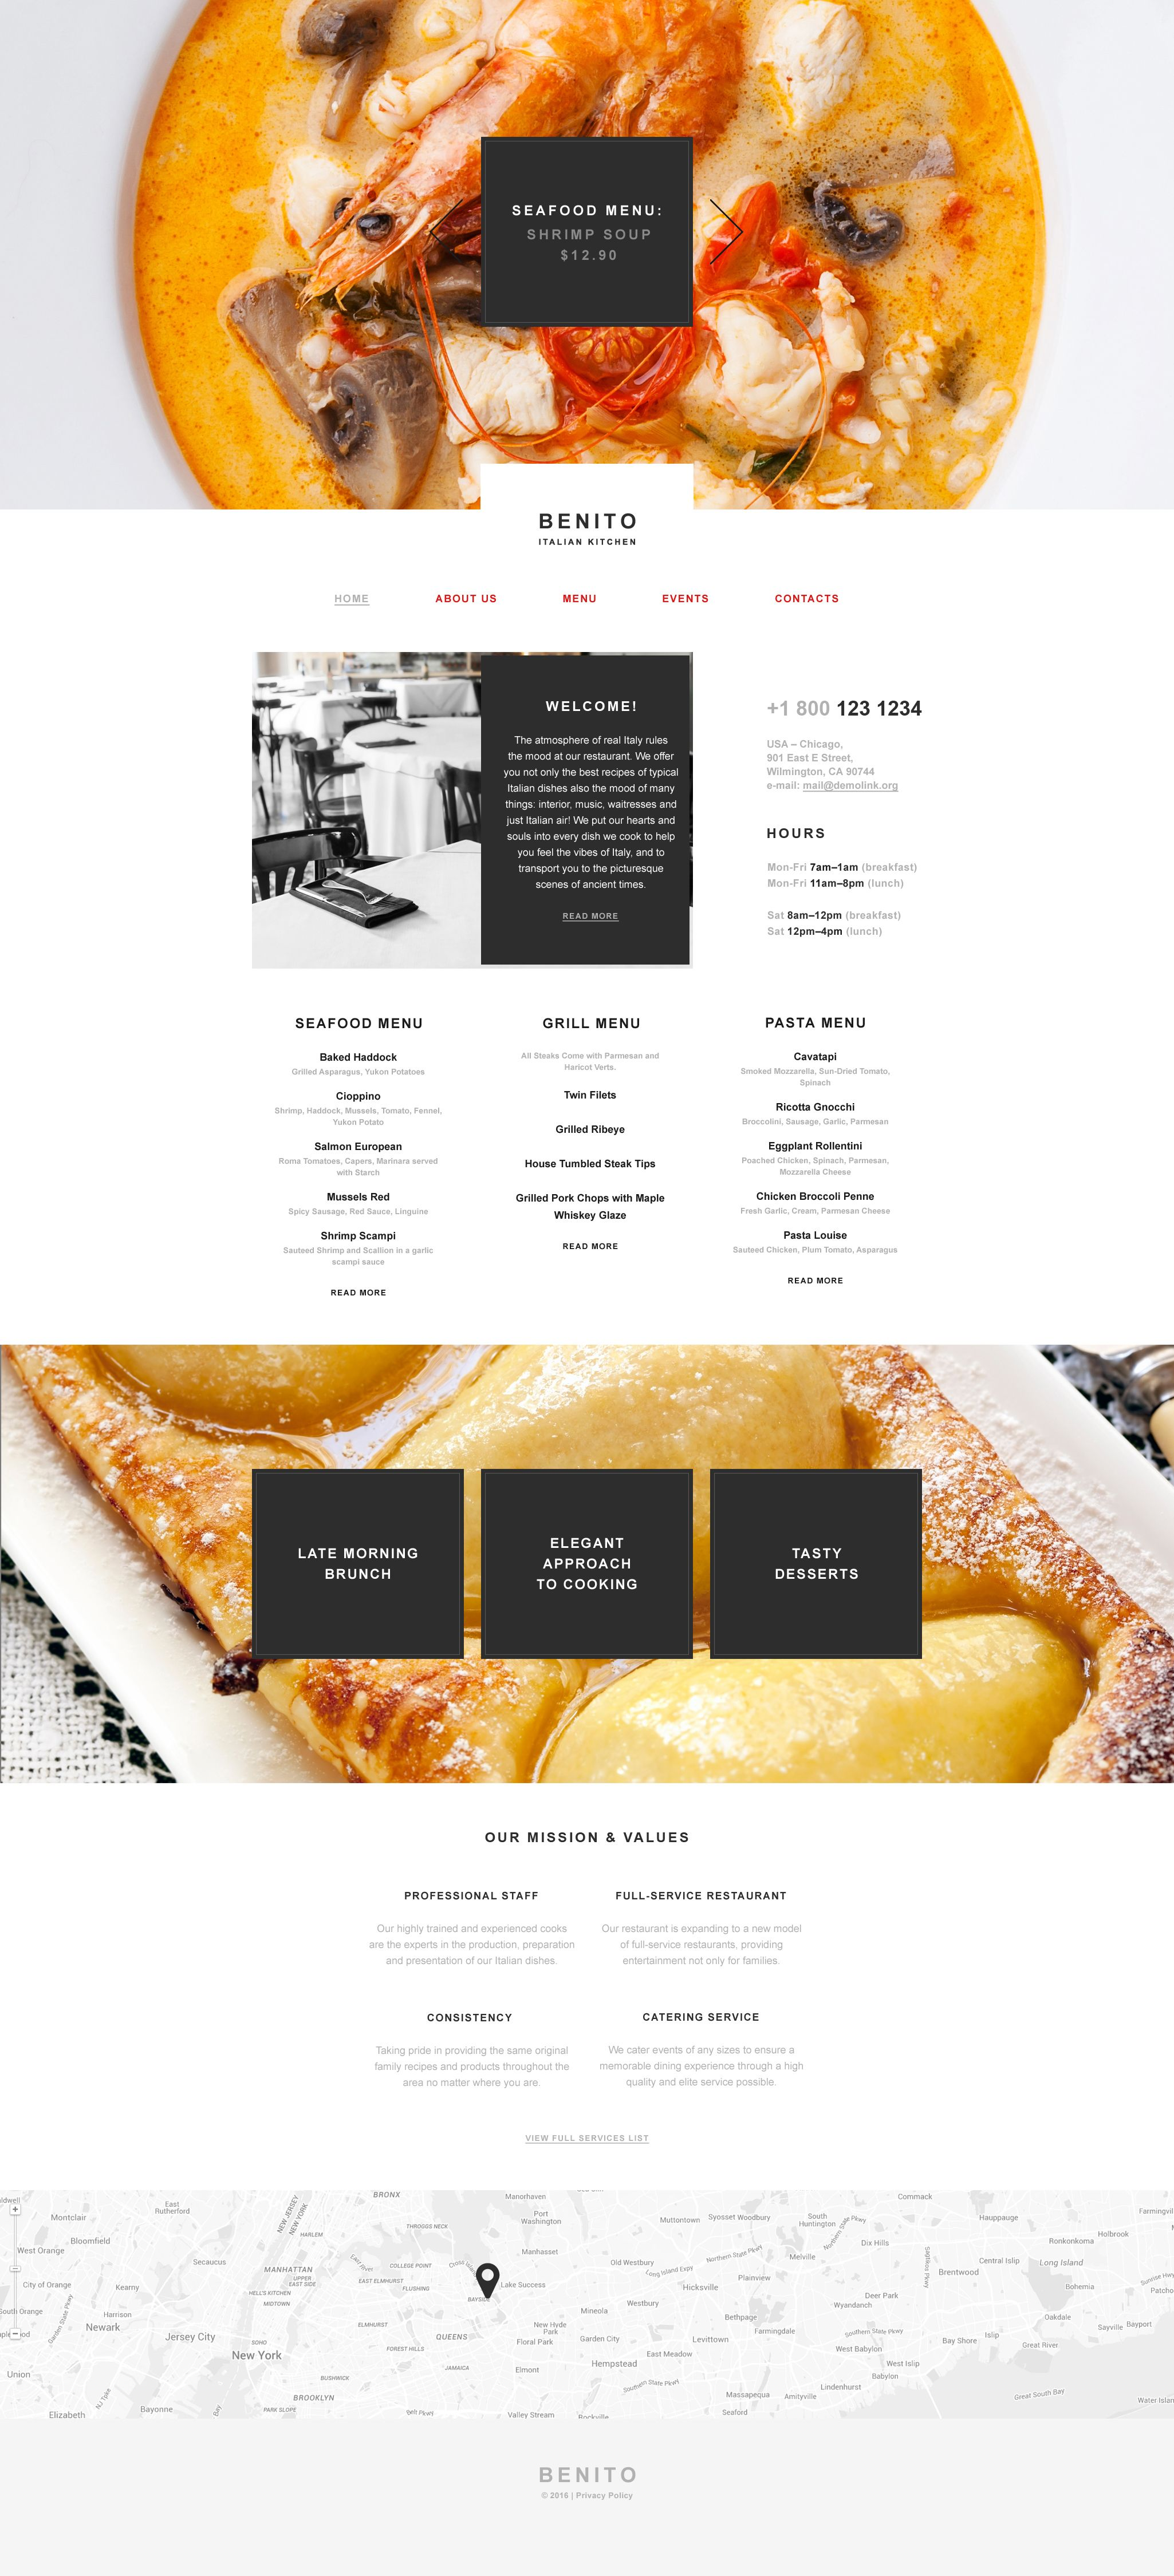 BENITO Muse Template New Website Templates Pinterest